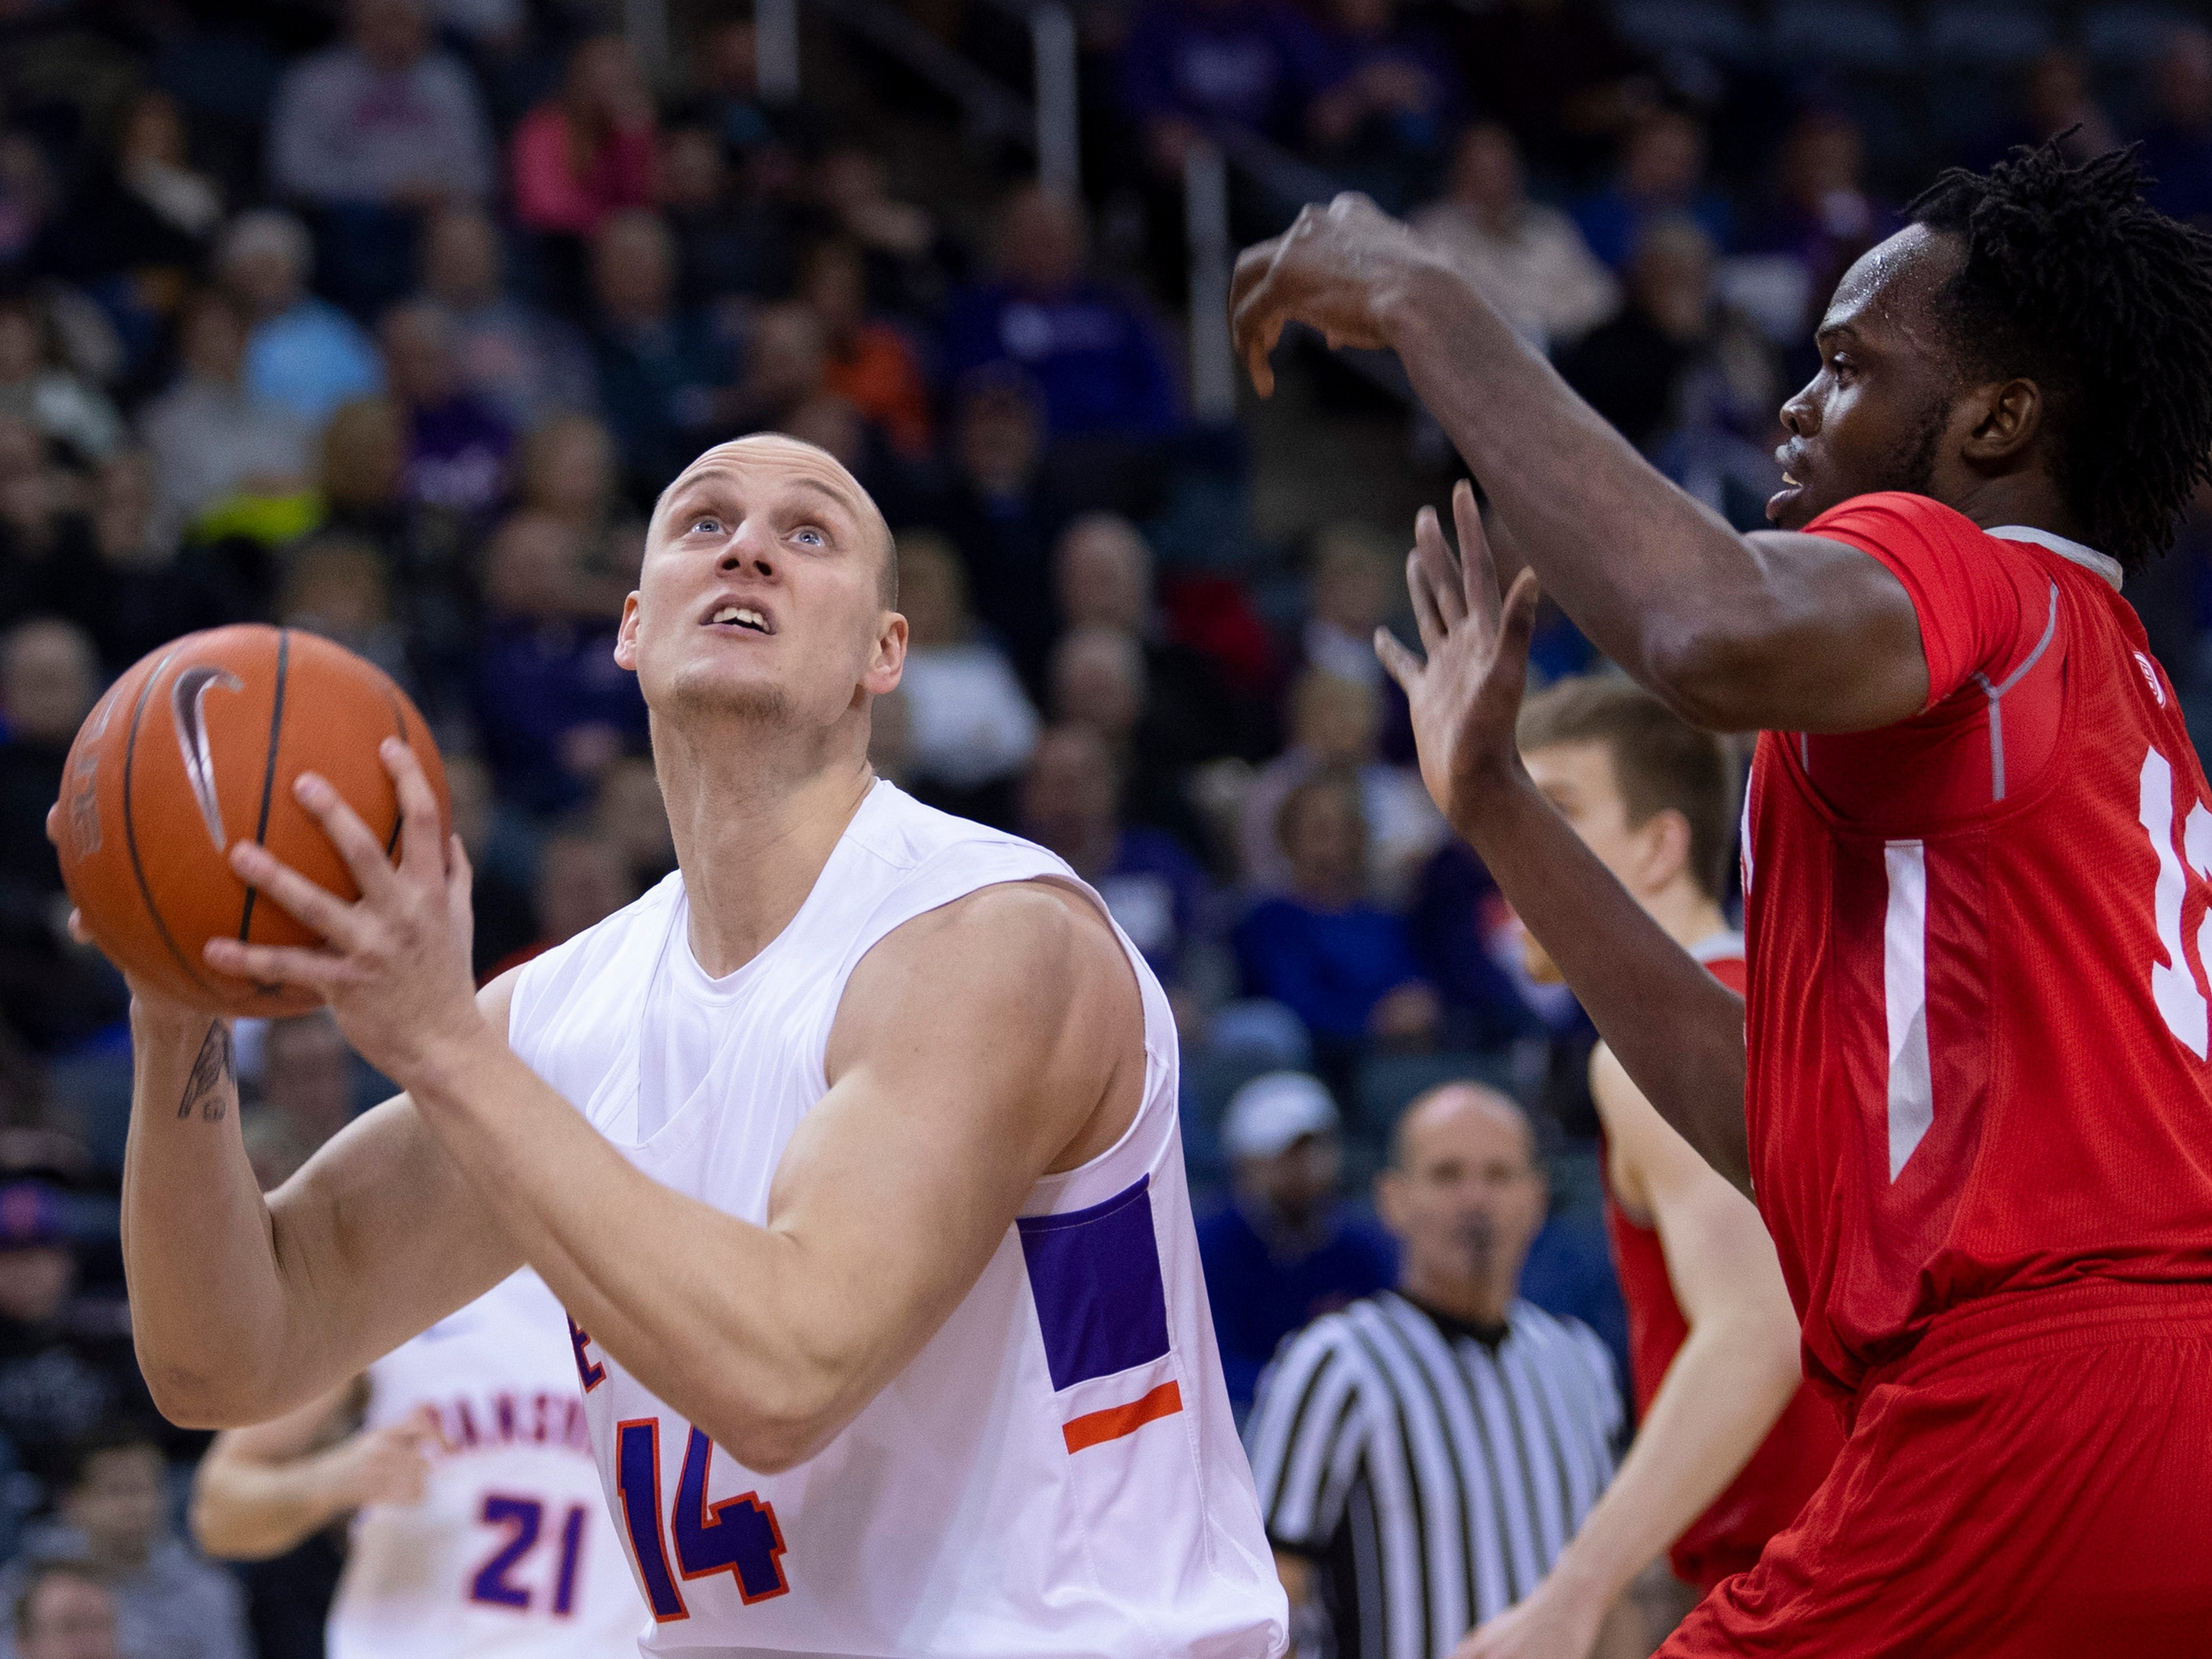 Evansville's Dainius Chatkevicius (14) goes strong to the hoop against Bradley's Koch Bar (12) during their game at the Ford Center Wednesday night.